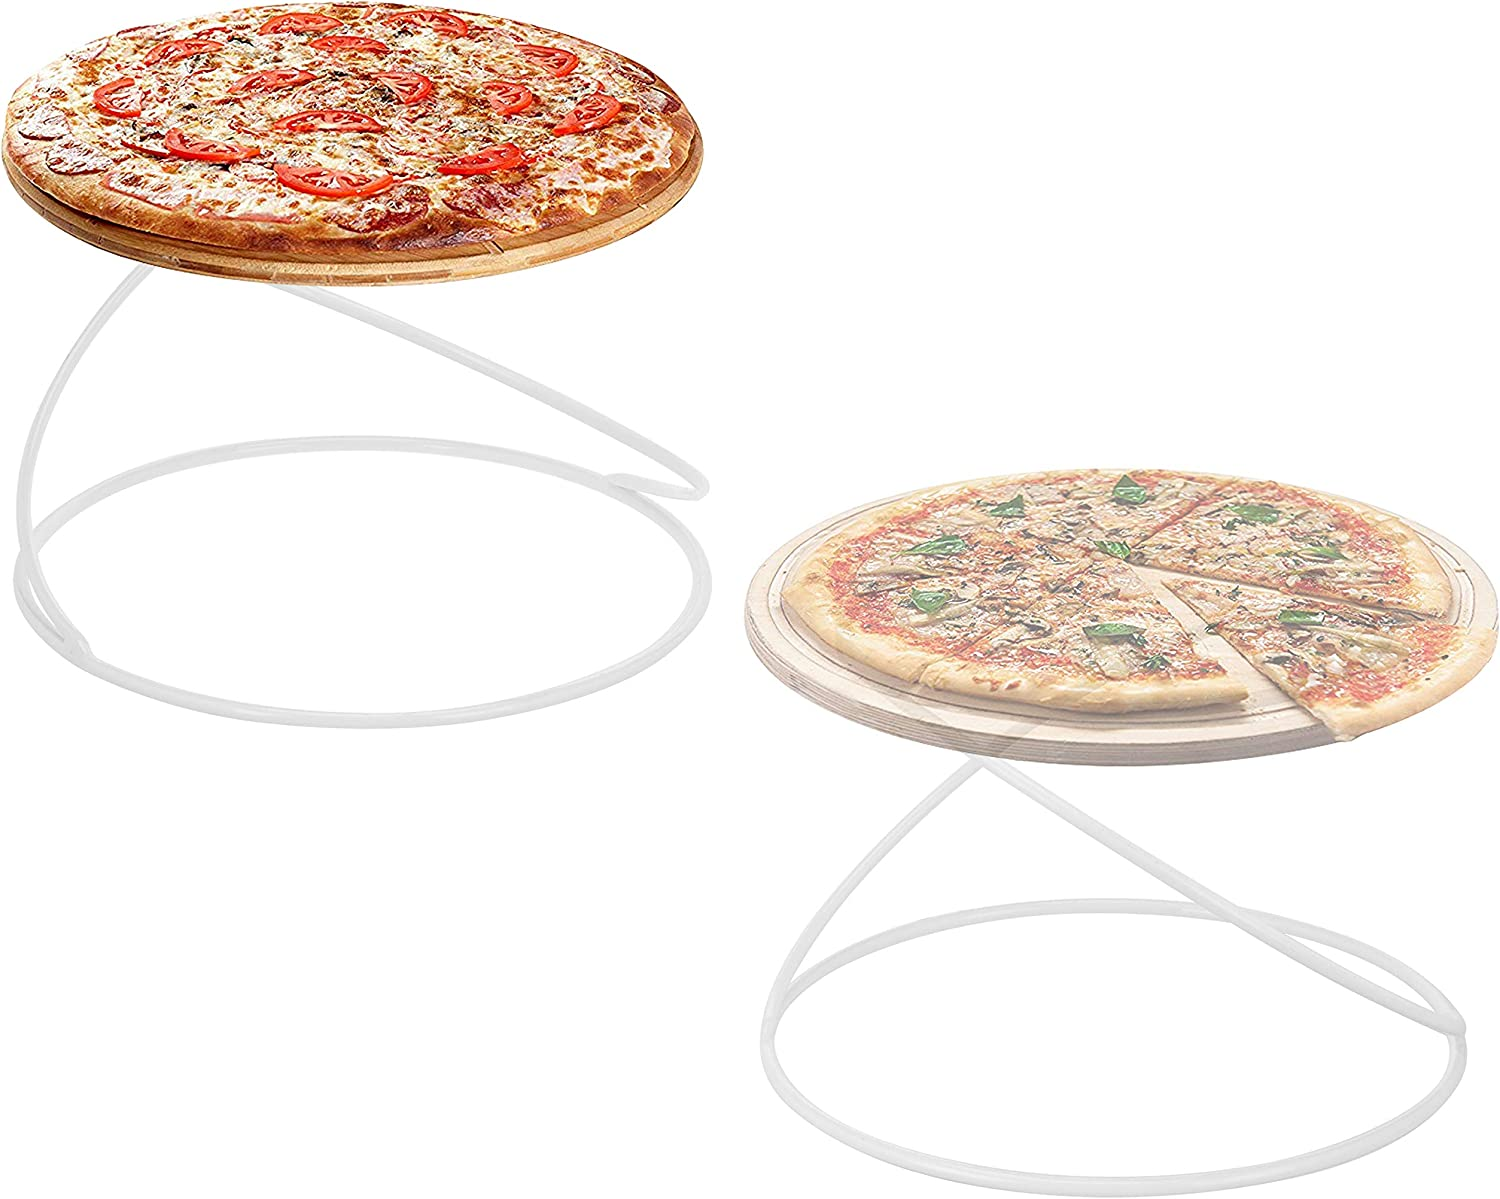 MyGift Modern White Metal Wire Circular Pizza Serving Stands, Set of 2